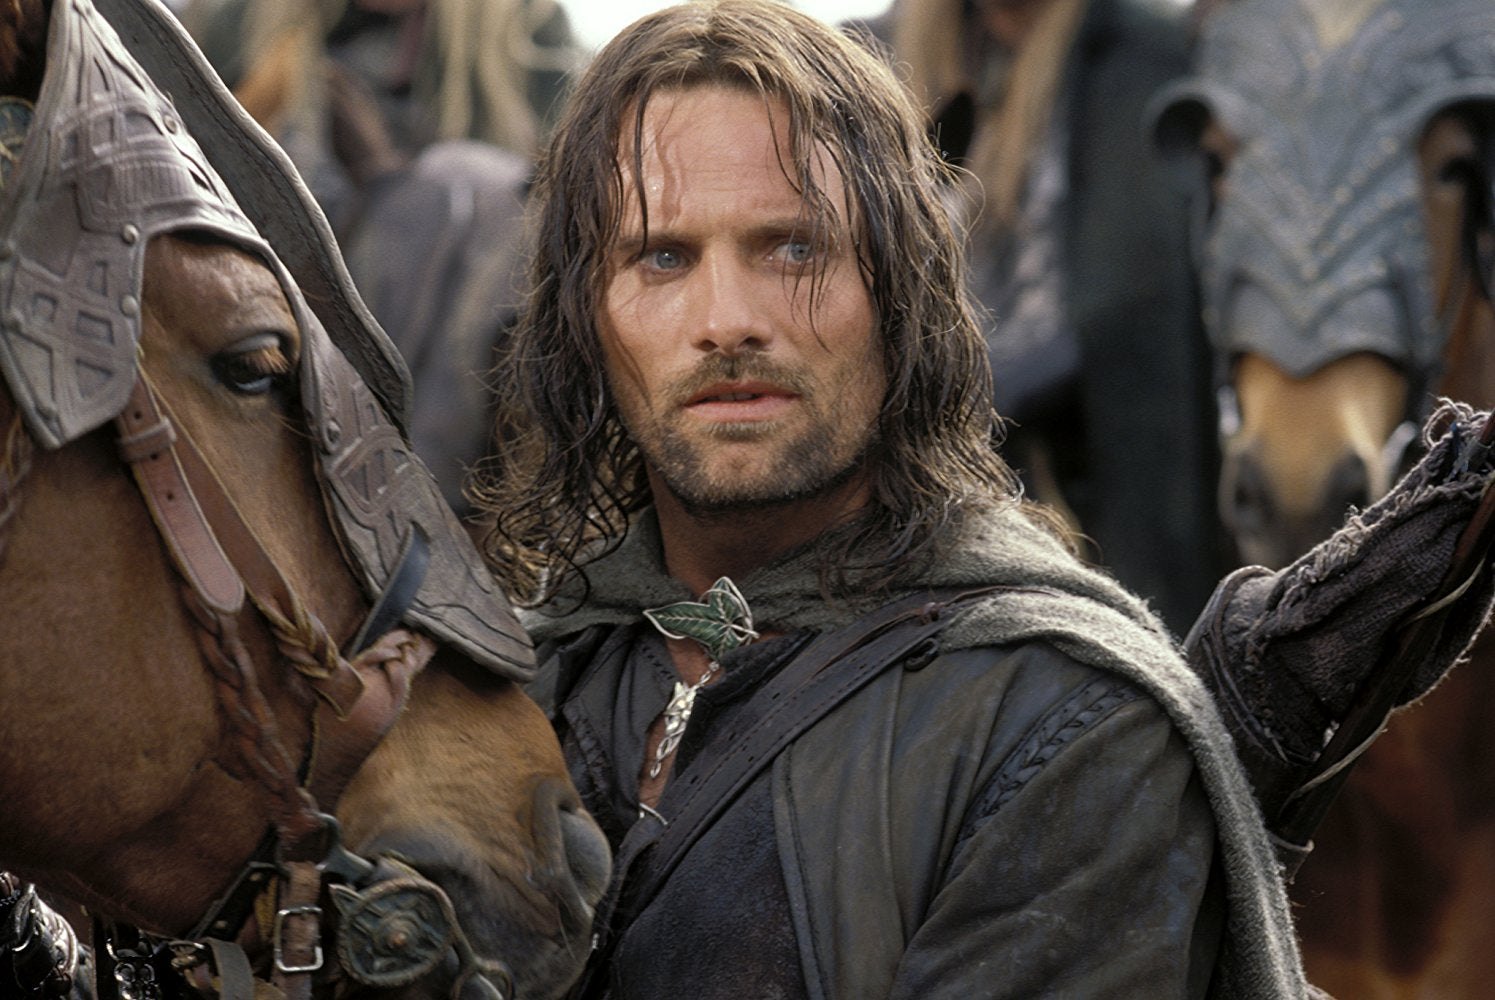 Viggo Mortensen as Aragorn in Lord of the Rings. Also, a horse.